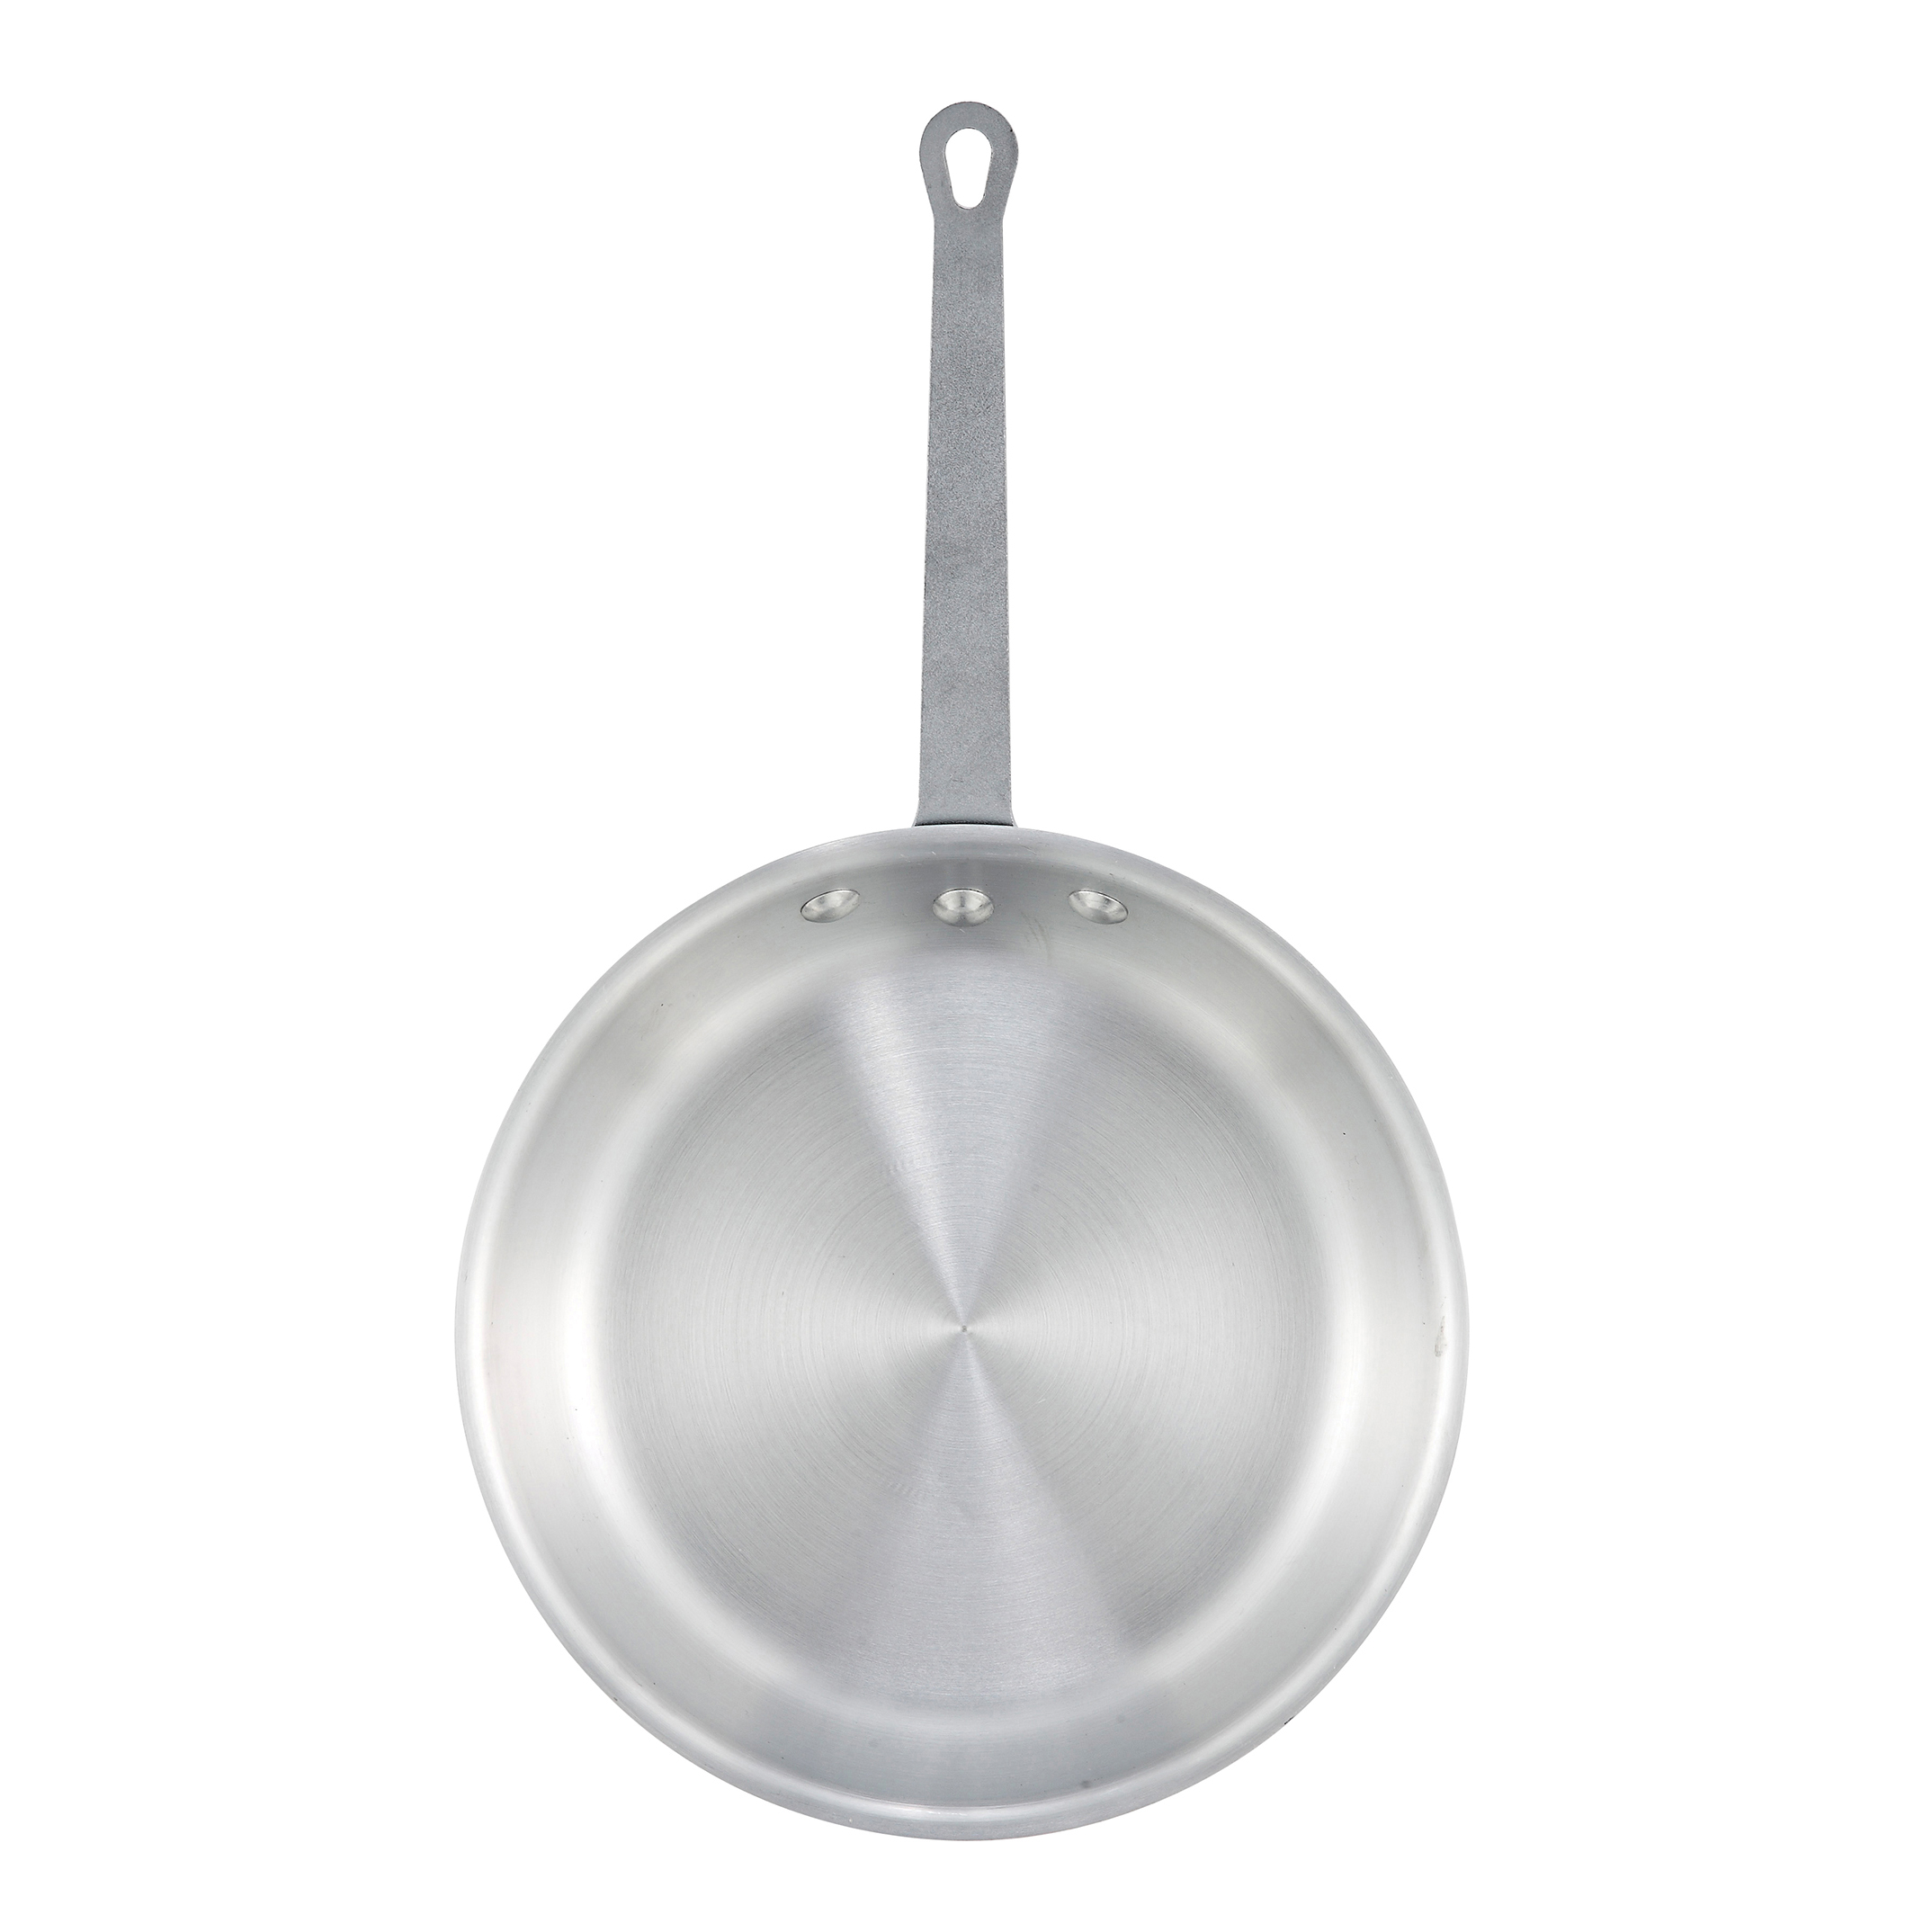 Winco AFP-12A fry pan